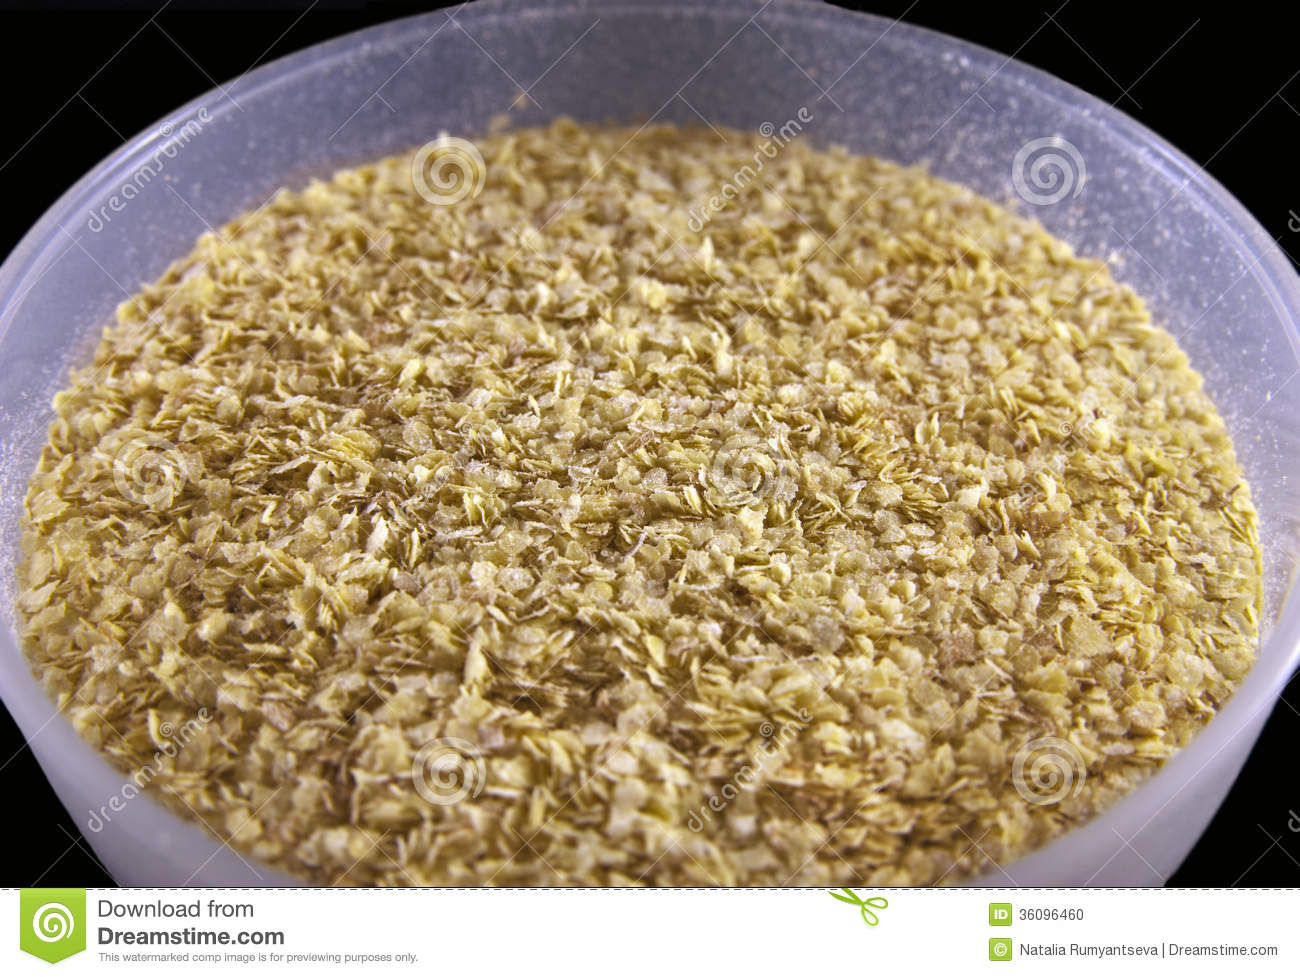 Wheat germ in a plastic bowl